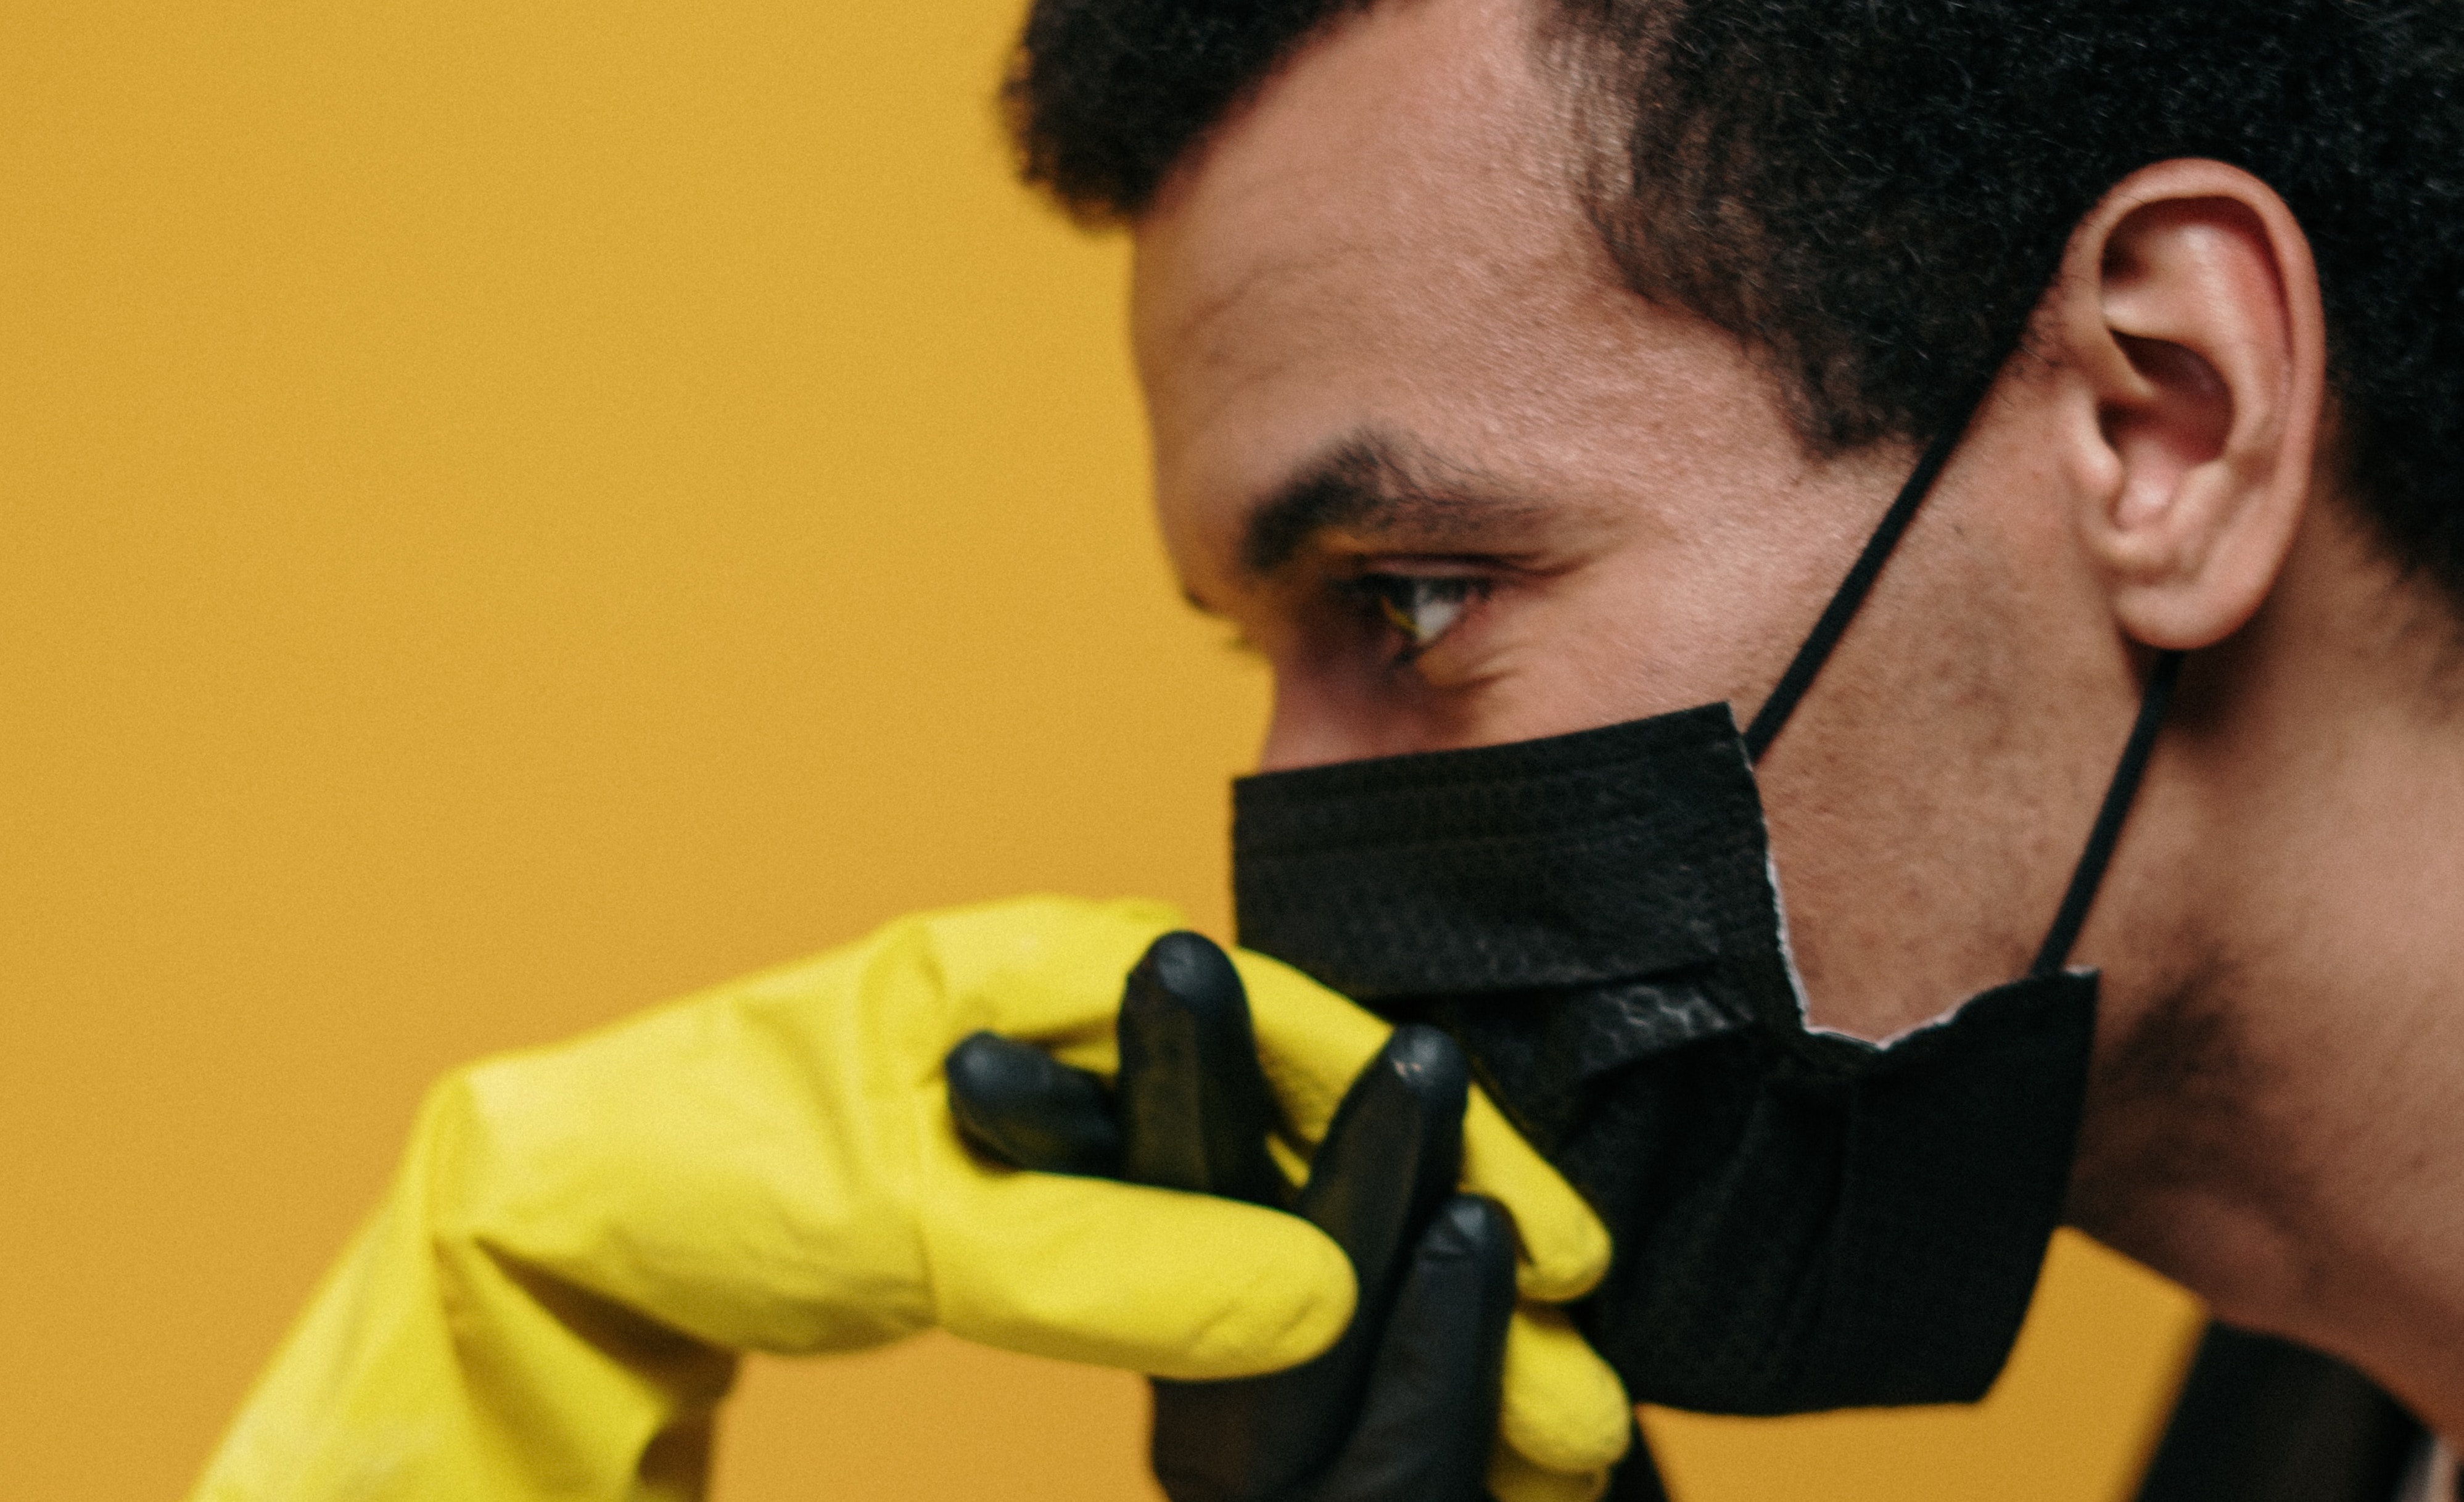 Man in mask kisses hand in yellow rubber glove